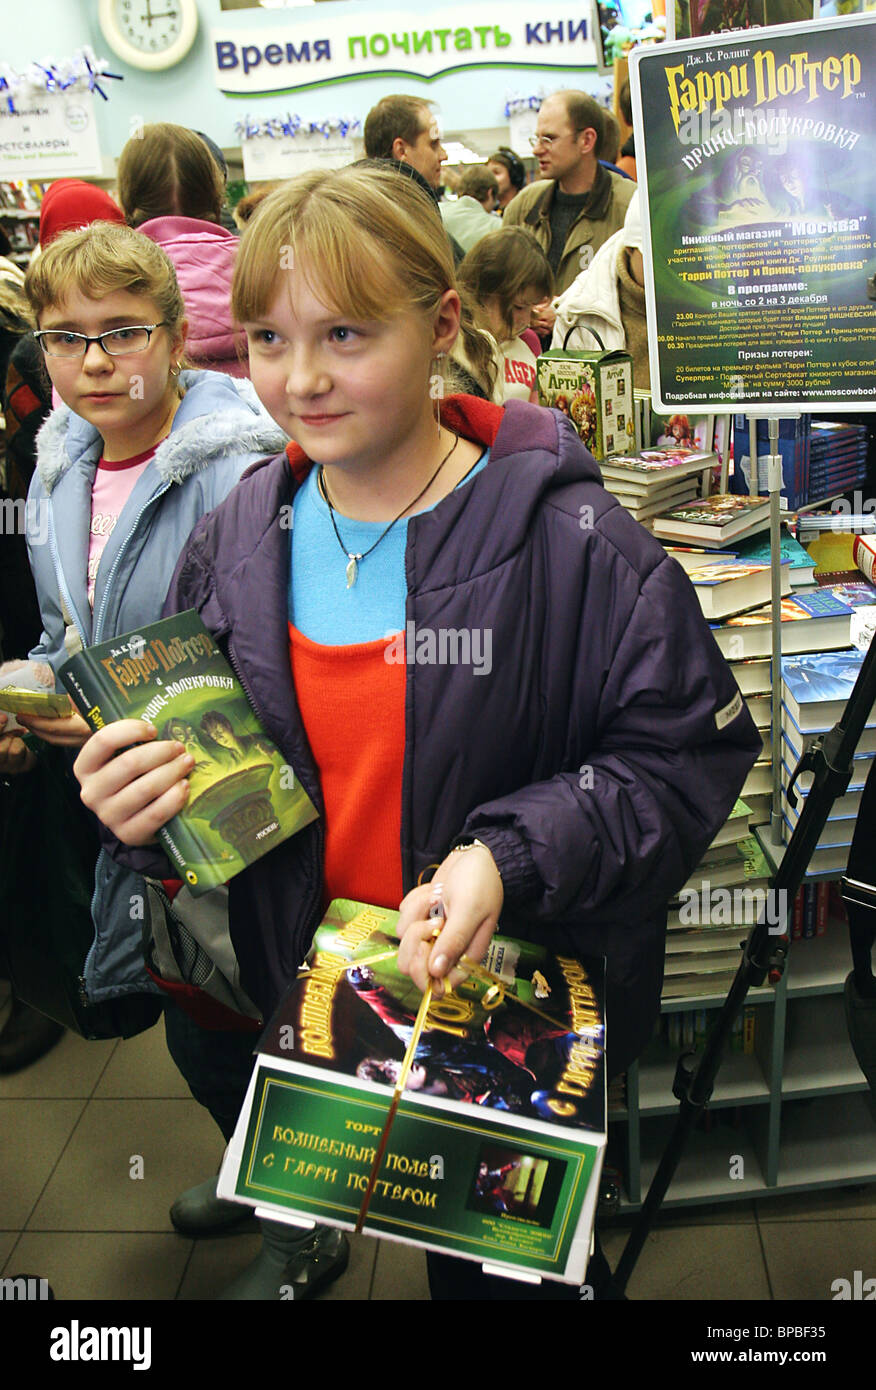 Sixth book in the Harry Potter series appears on sale in Russia - Stock Image